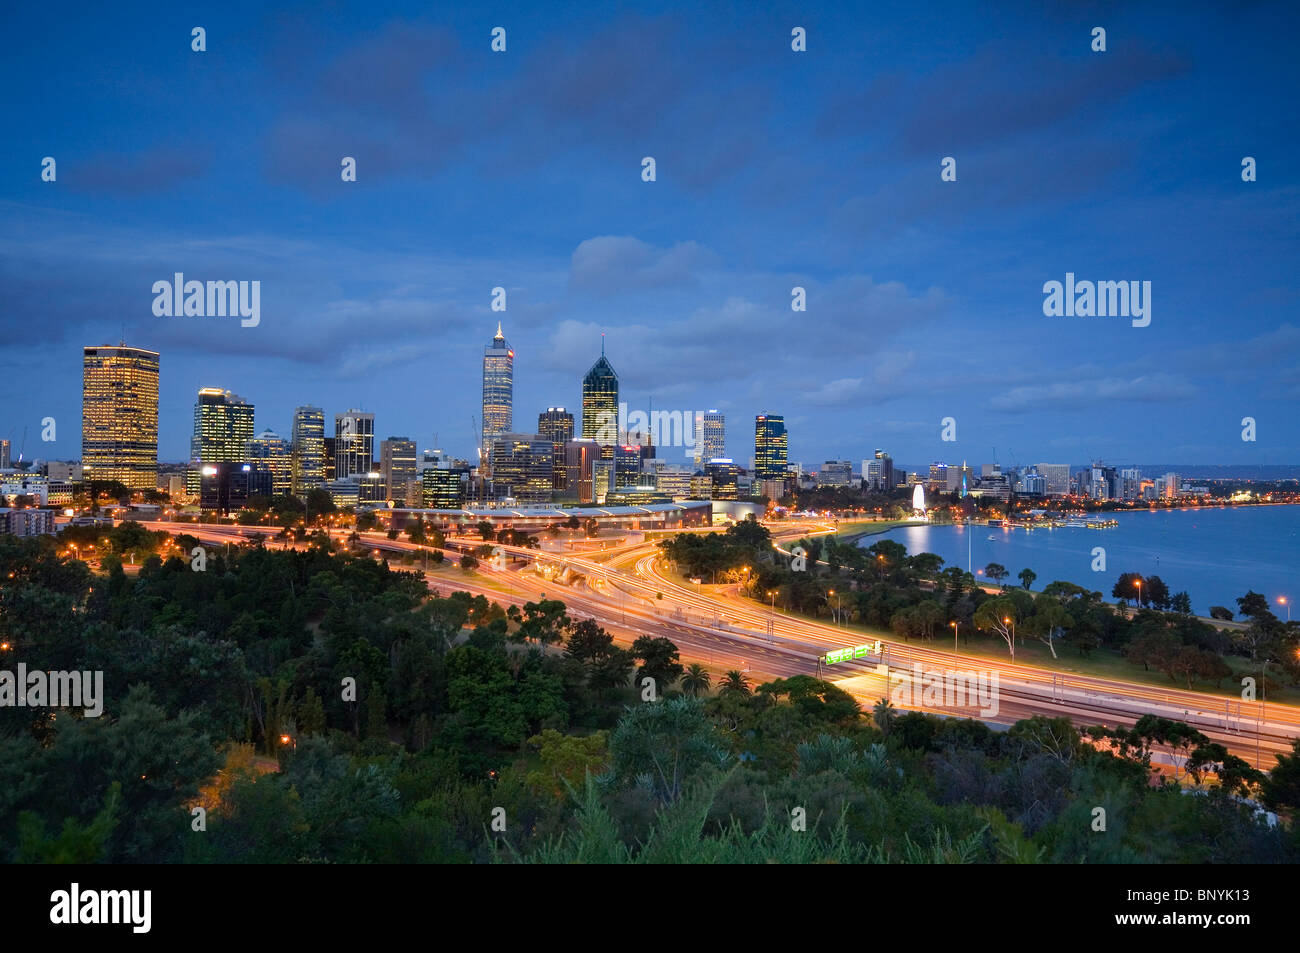 Dusk view of Perth from Kings Park. Perth, Western Australia, AUSTRALIA. - Stock Image